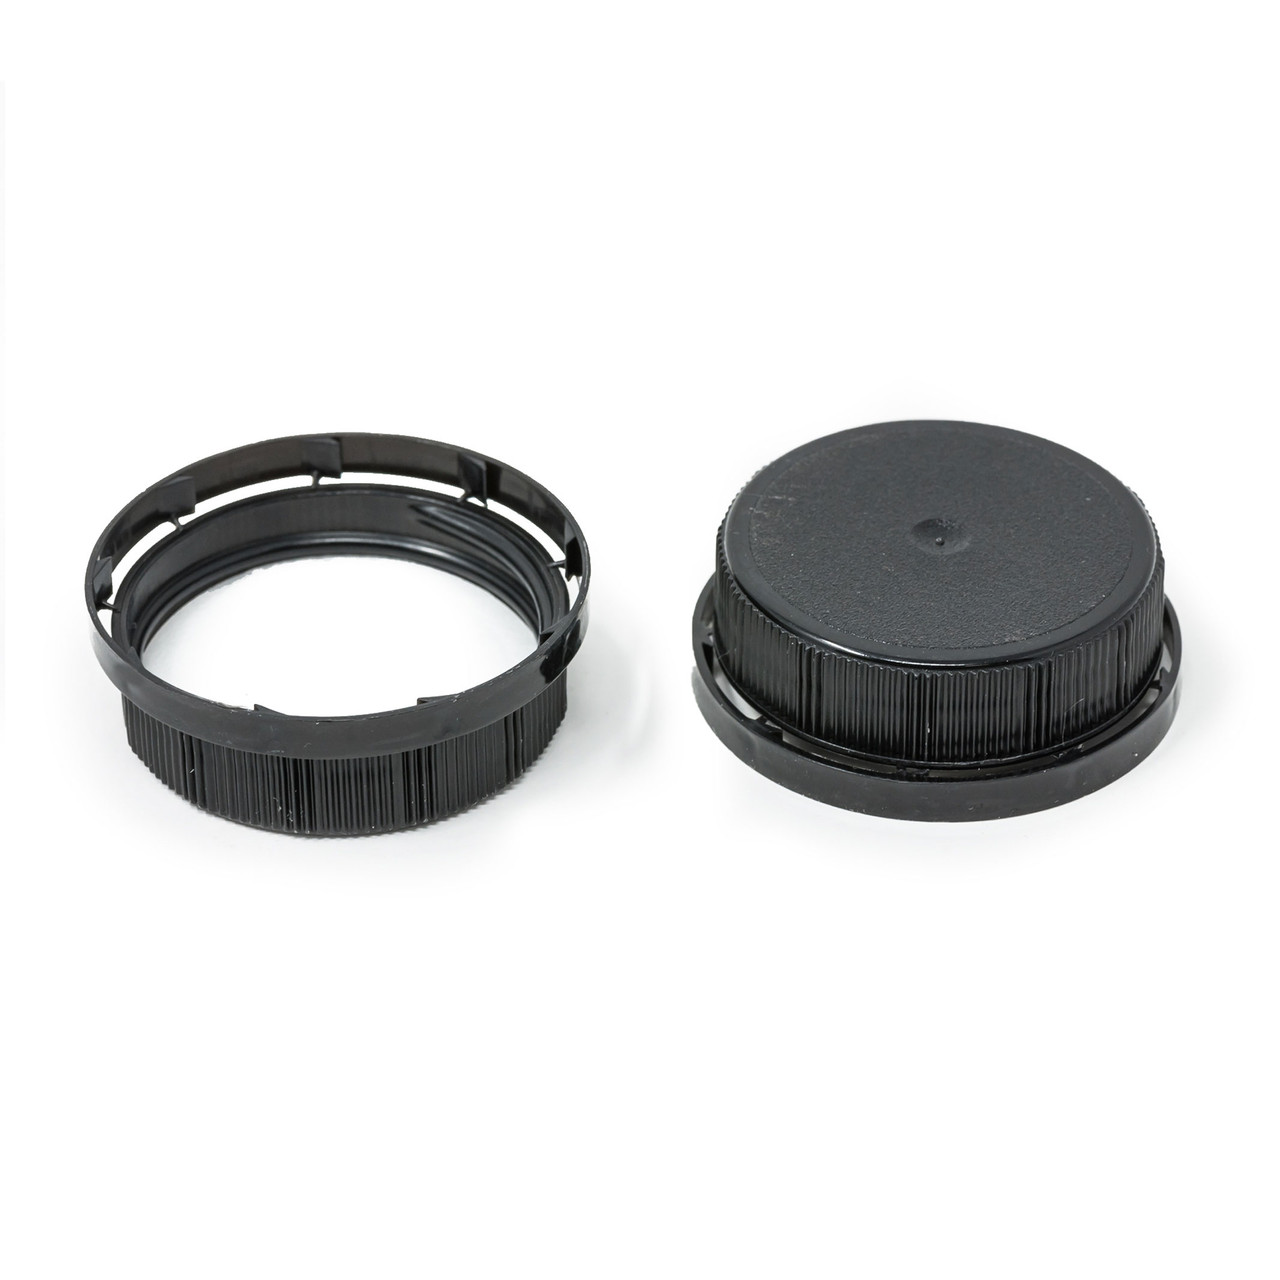 Replacement caps for Sugarhill Jugs